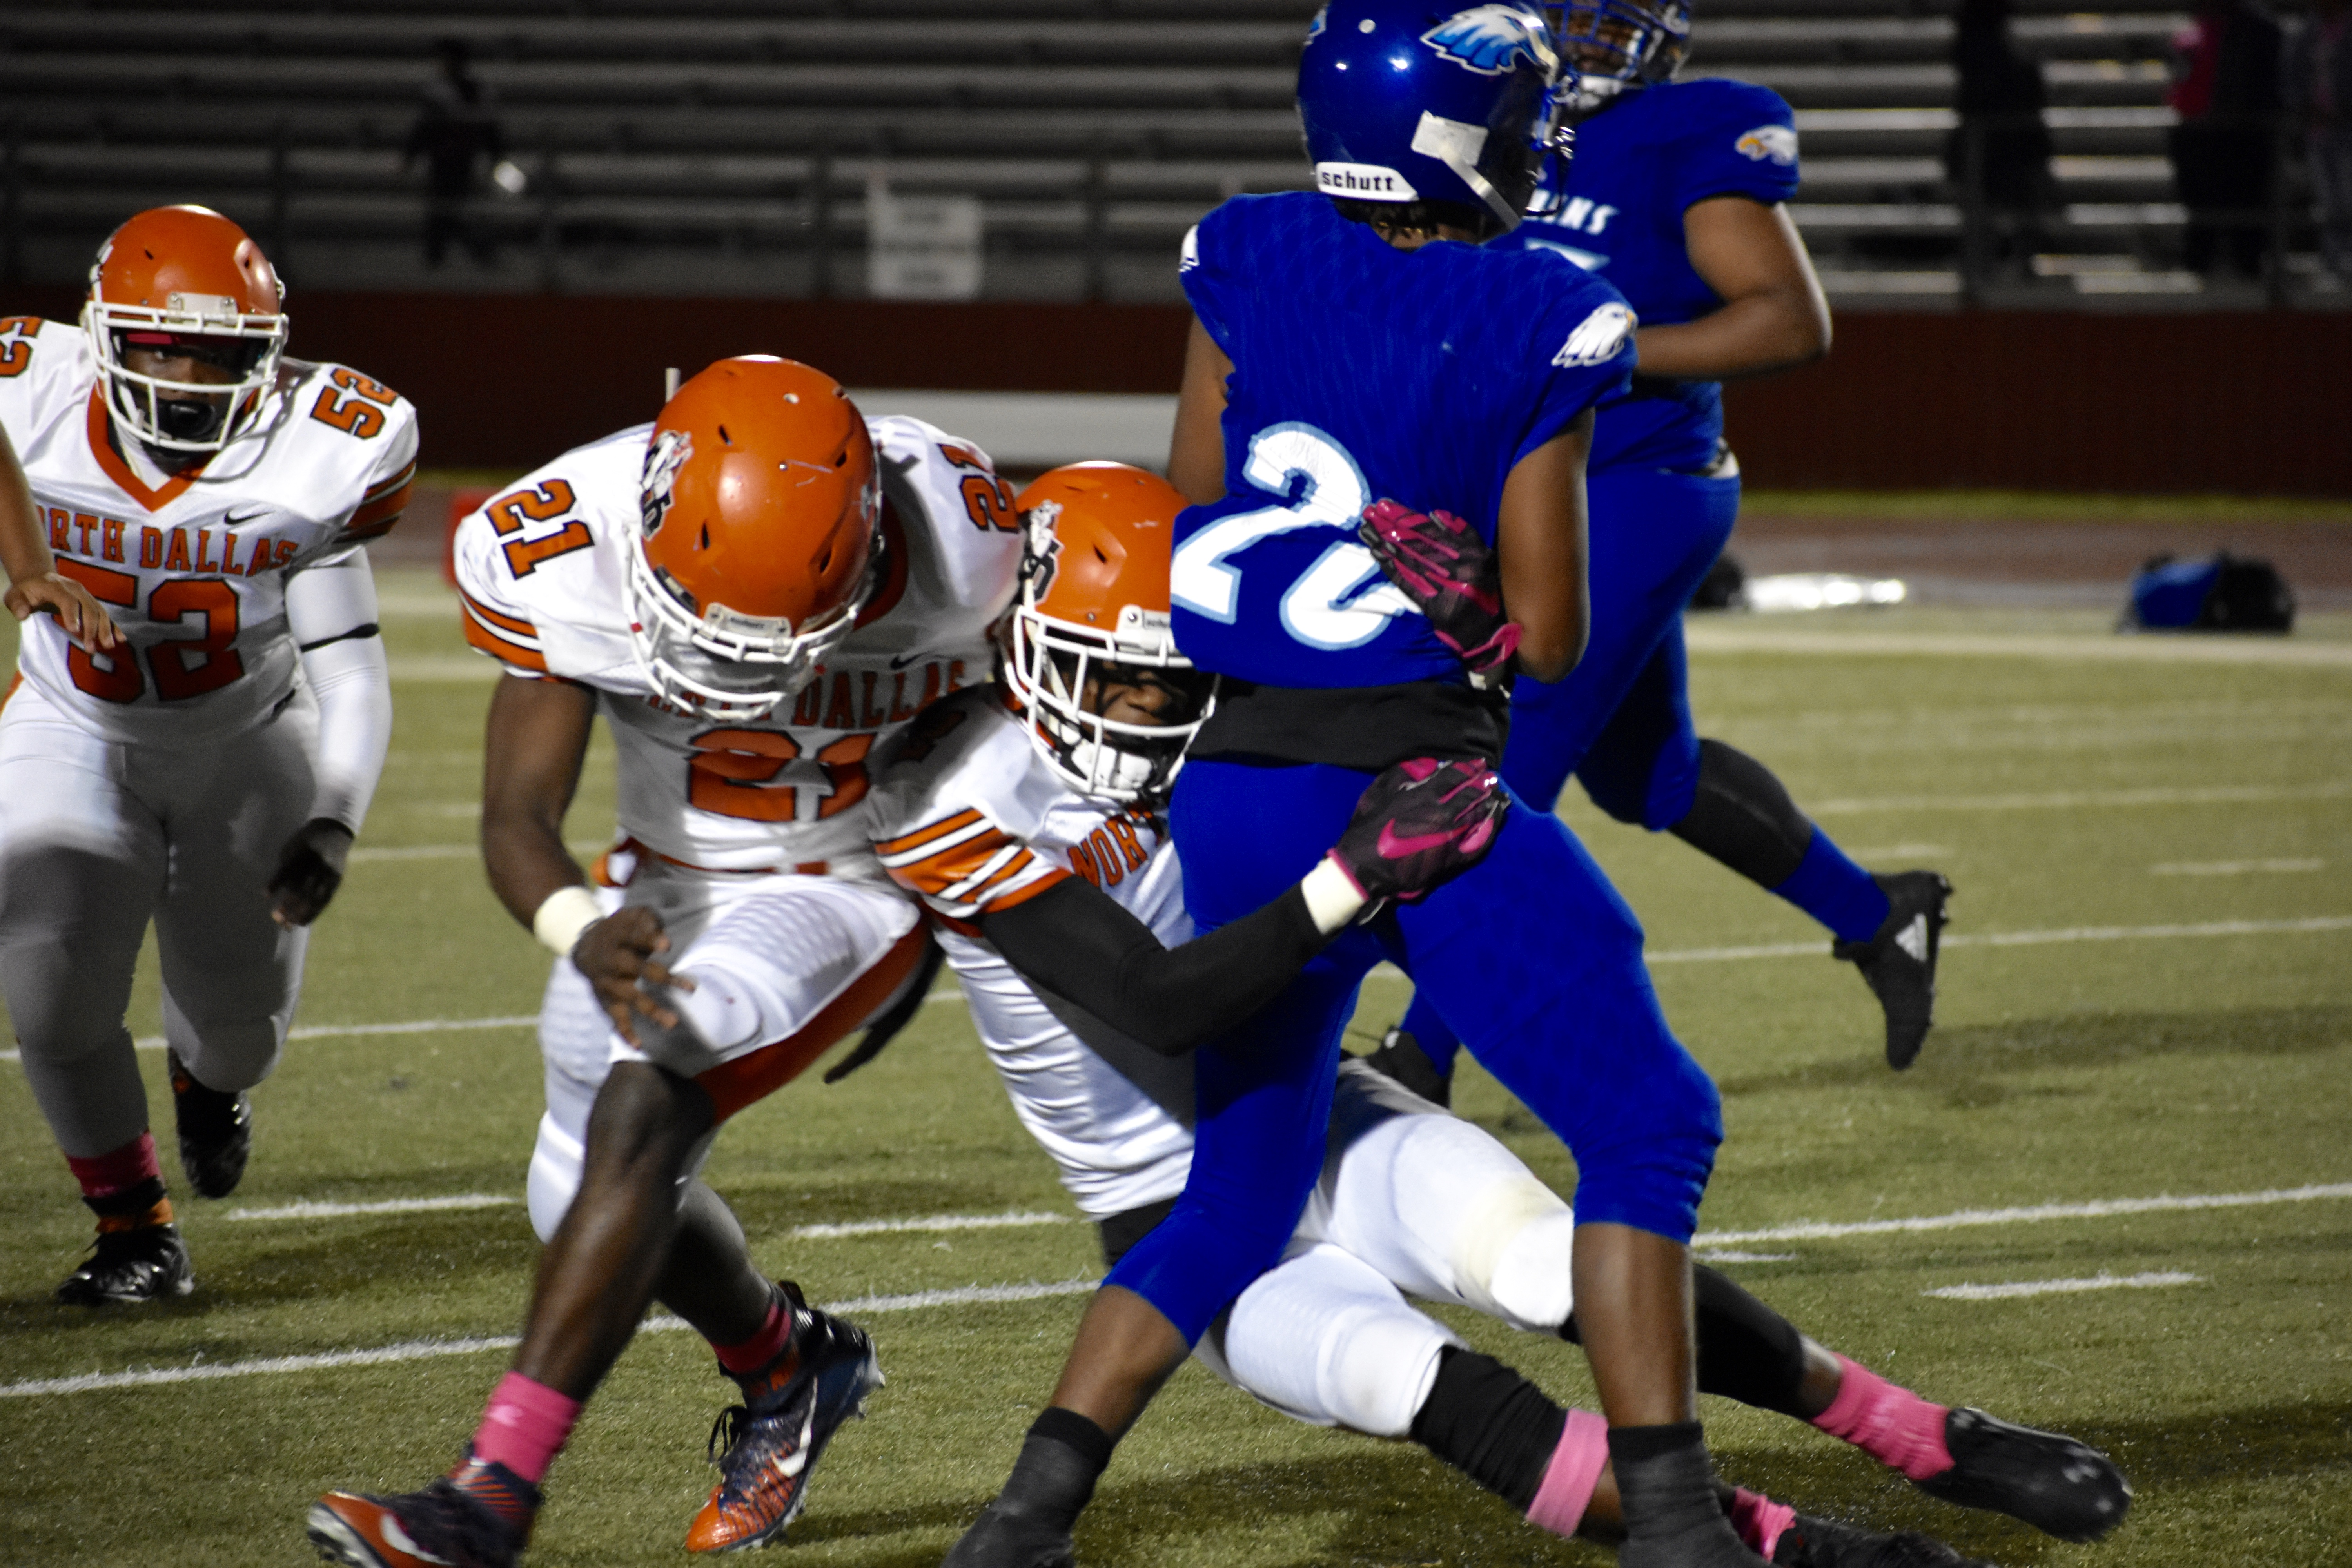 North Dallas getting ready 'to give a good show' against Pinkston in Homecoming game